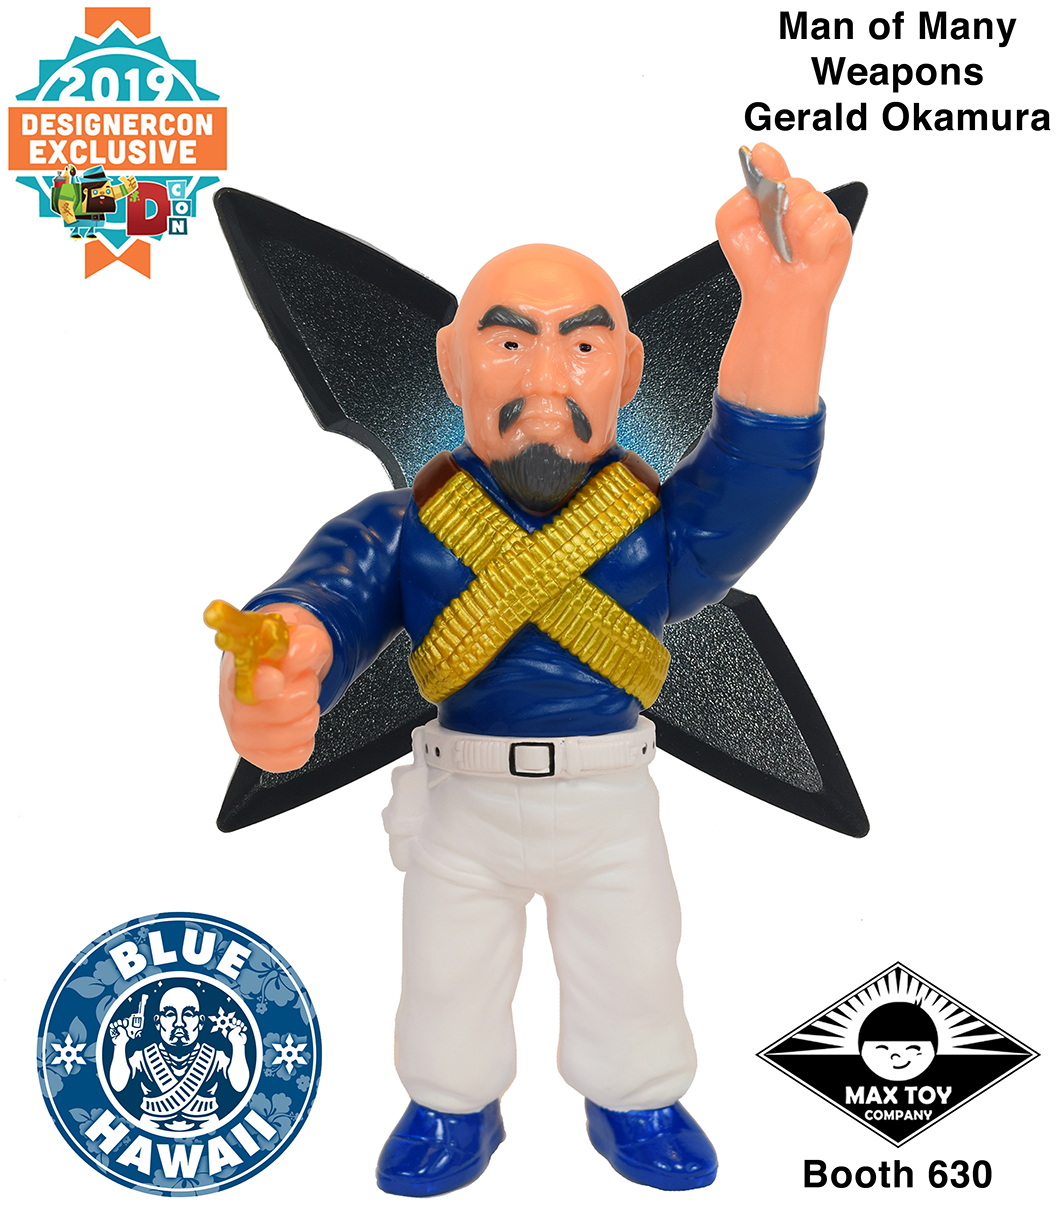 DesignerCon 2019 Exclusive Man of Many Weapons –Blue Hawaii Edition